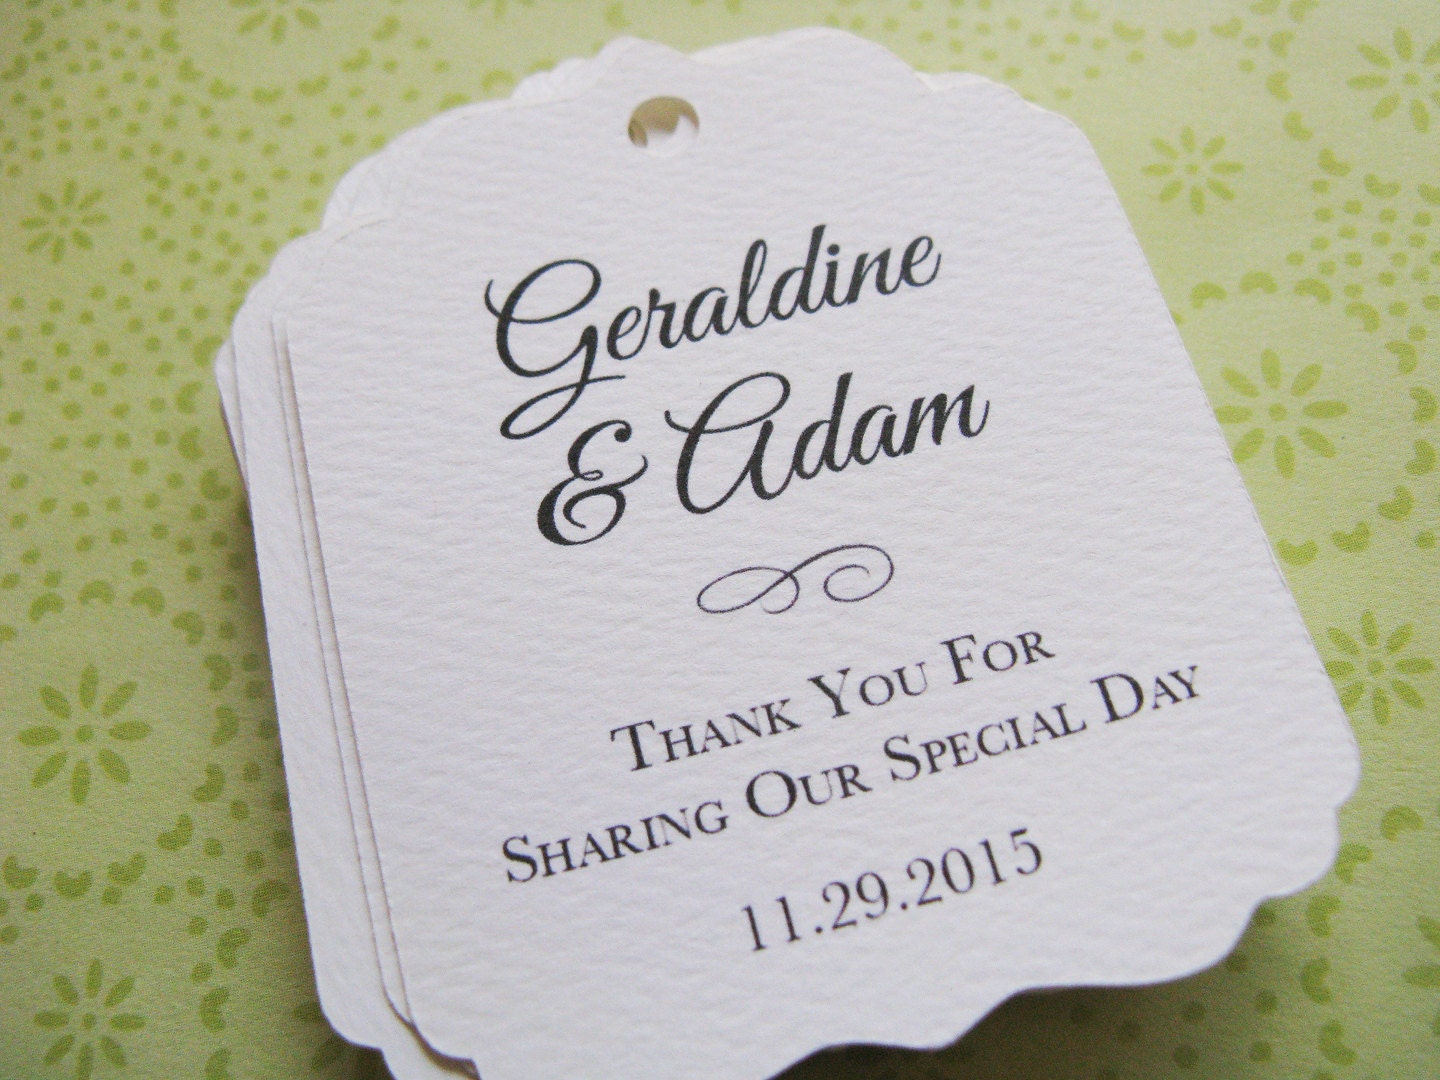 Personalised Wedding Gift Tags : Wedding favor tags Personalized tags for wedding favors